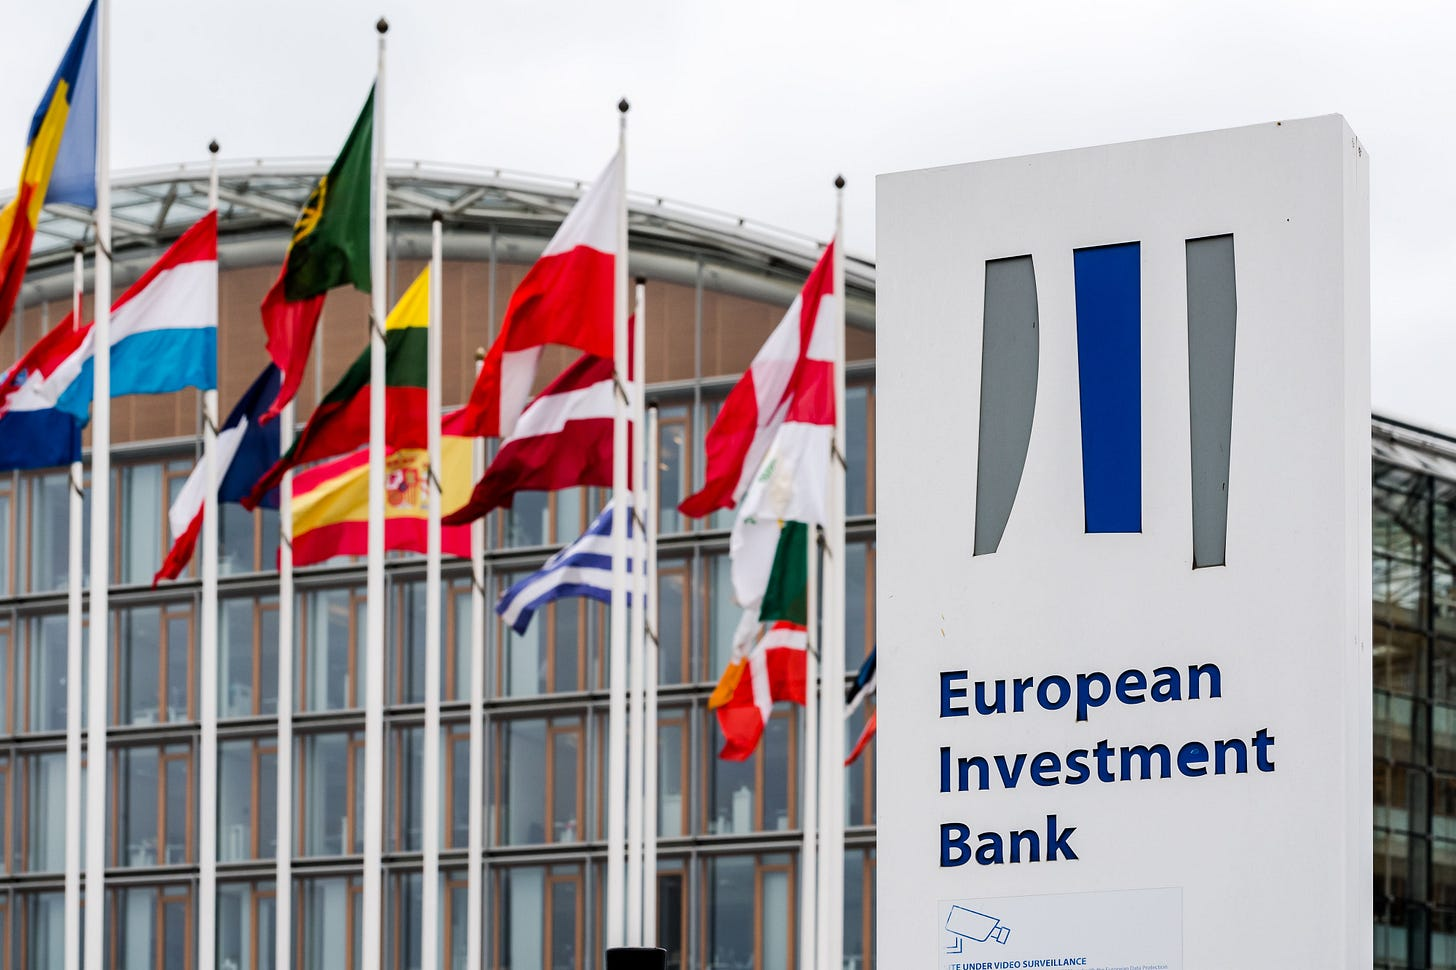 Europe's Investment Bank Will Stop Funding Fossil Fuel Projects   Fortune